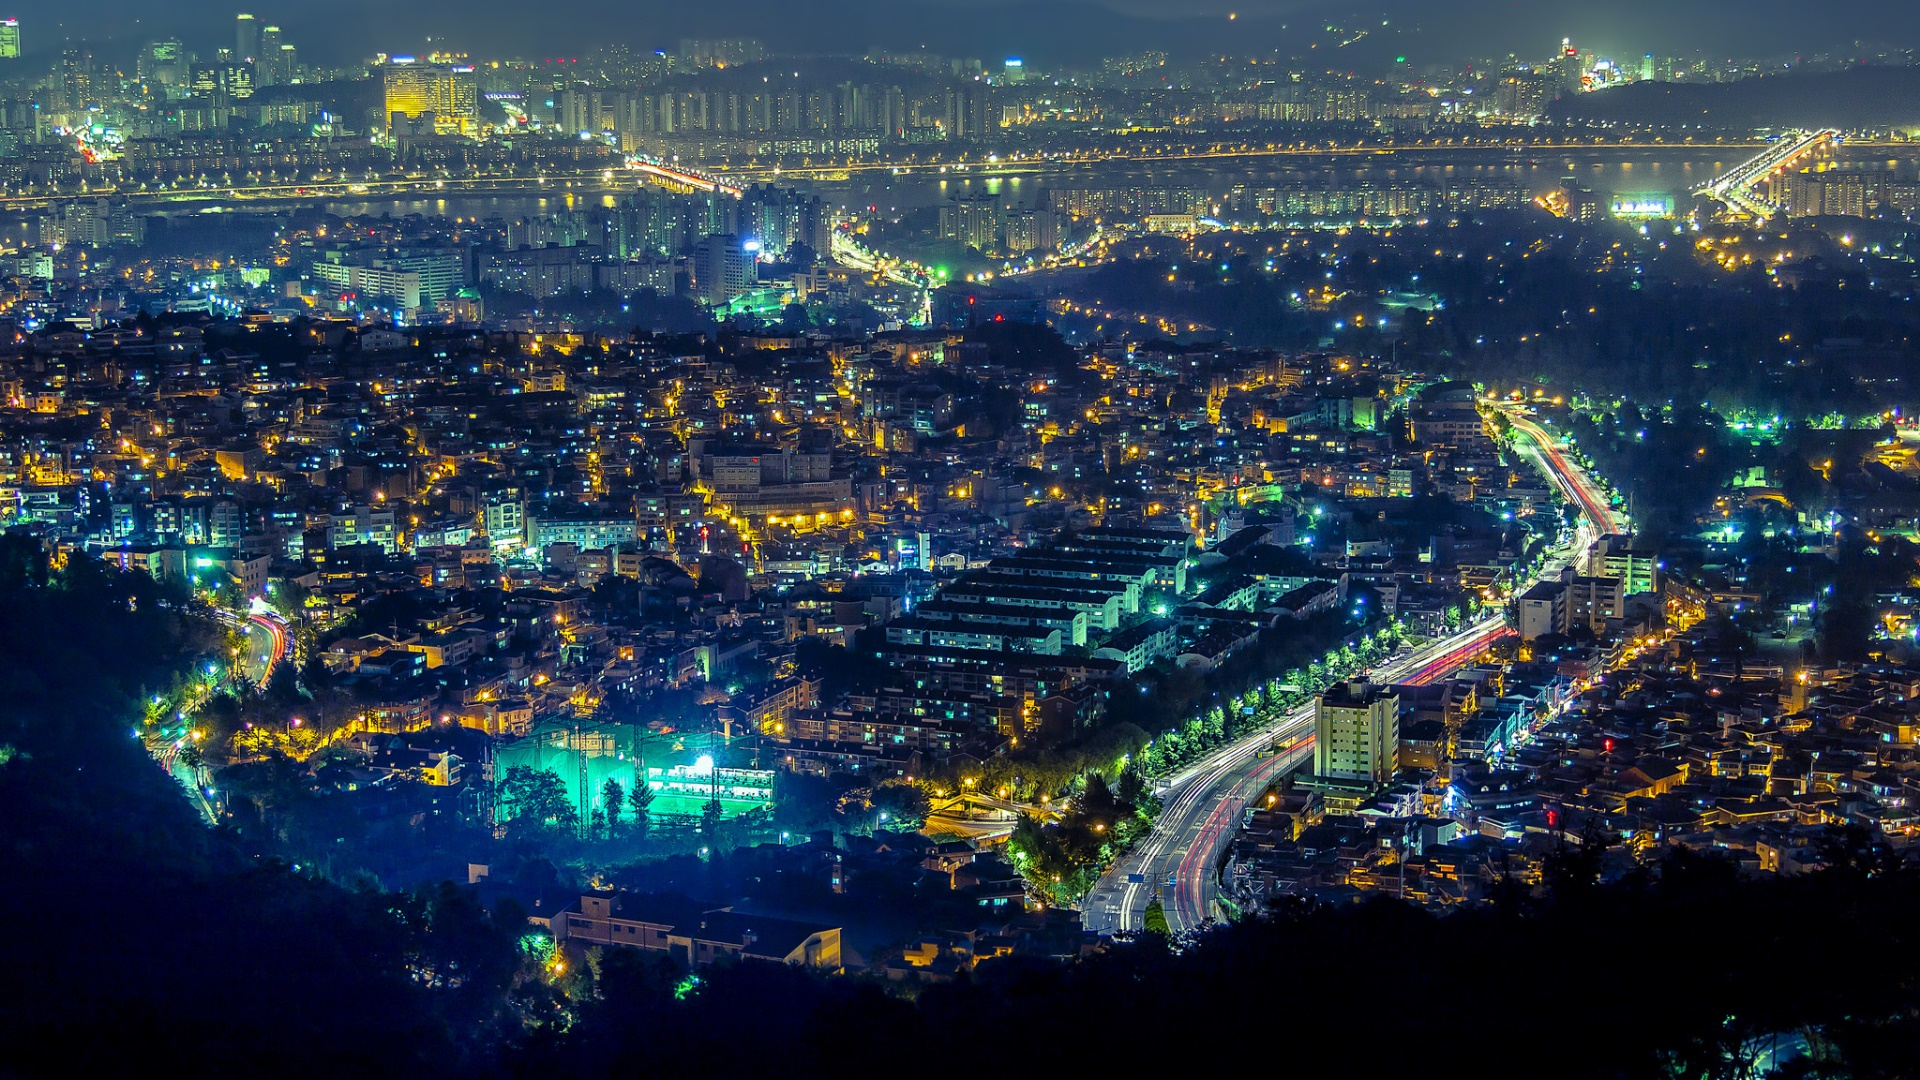 Seoul by night wallpaper